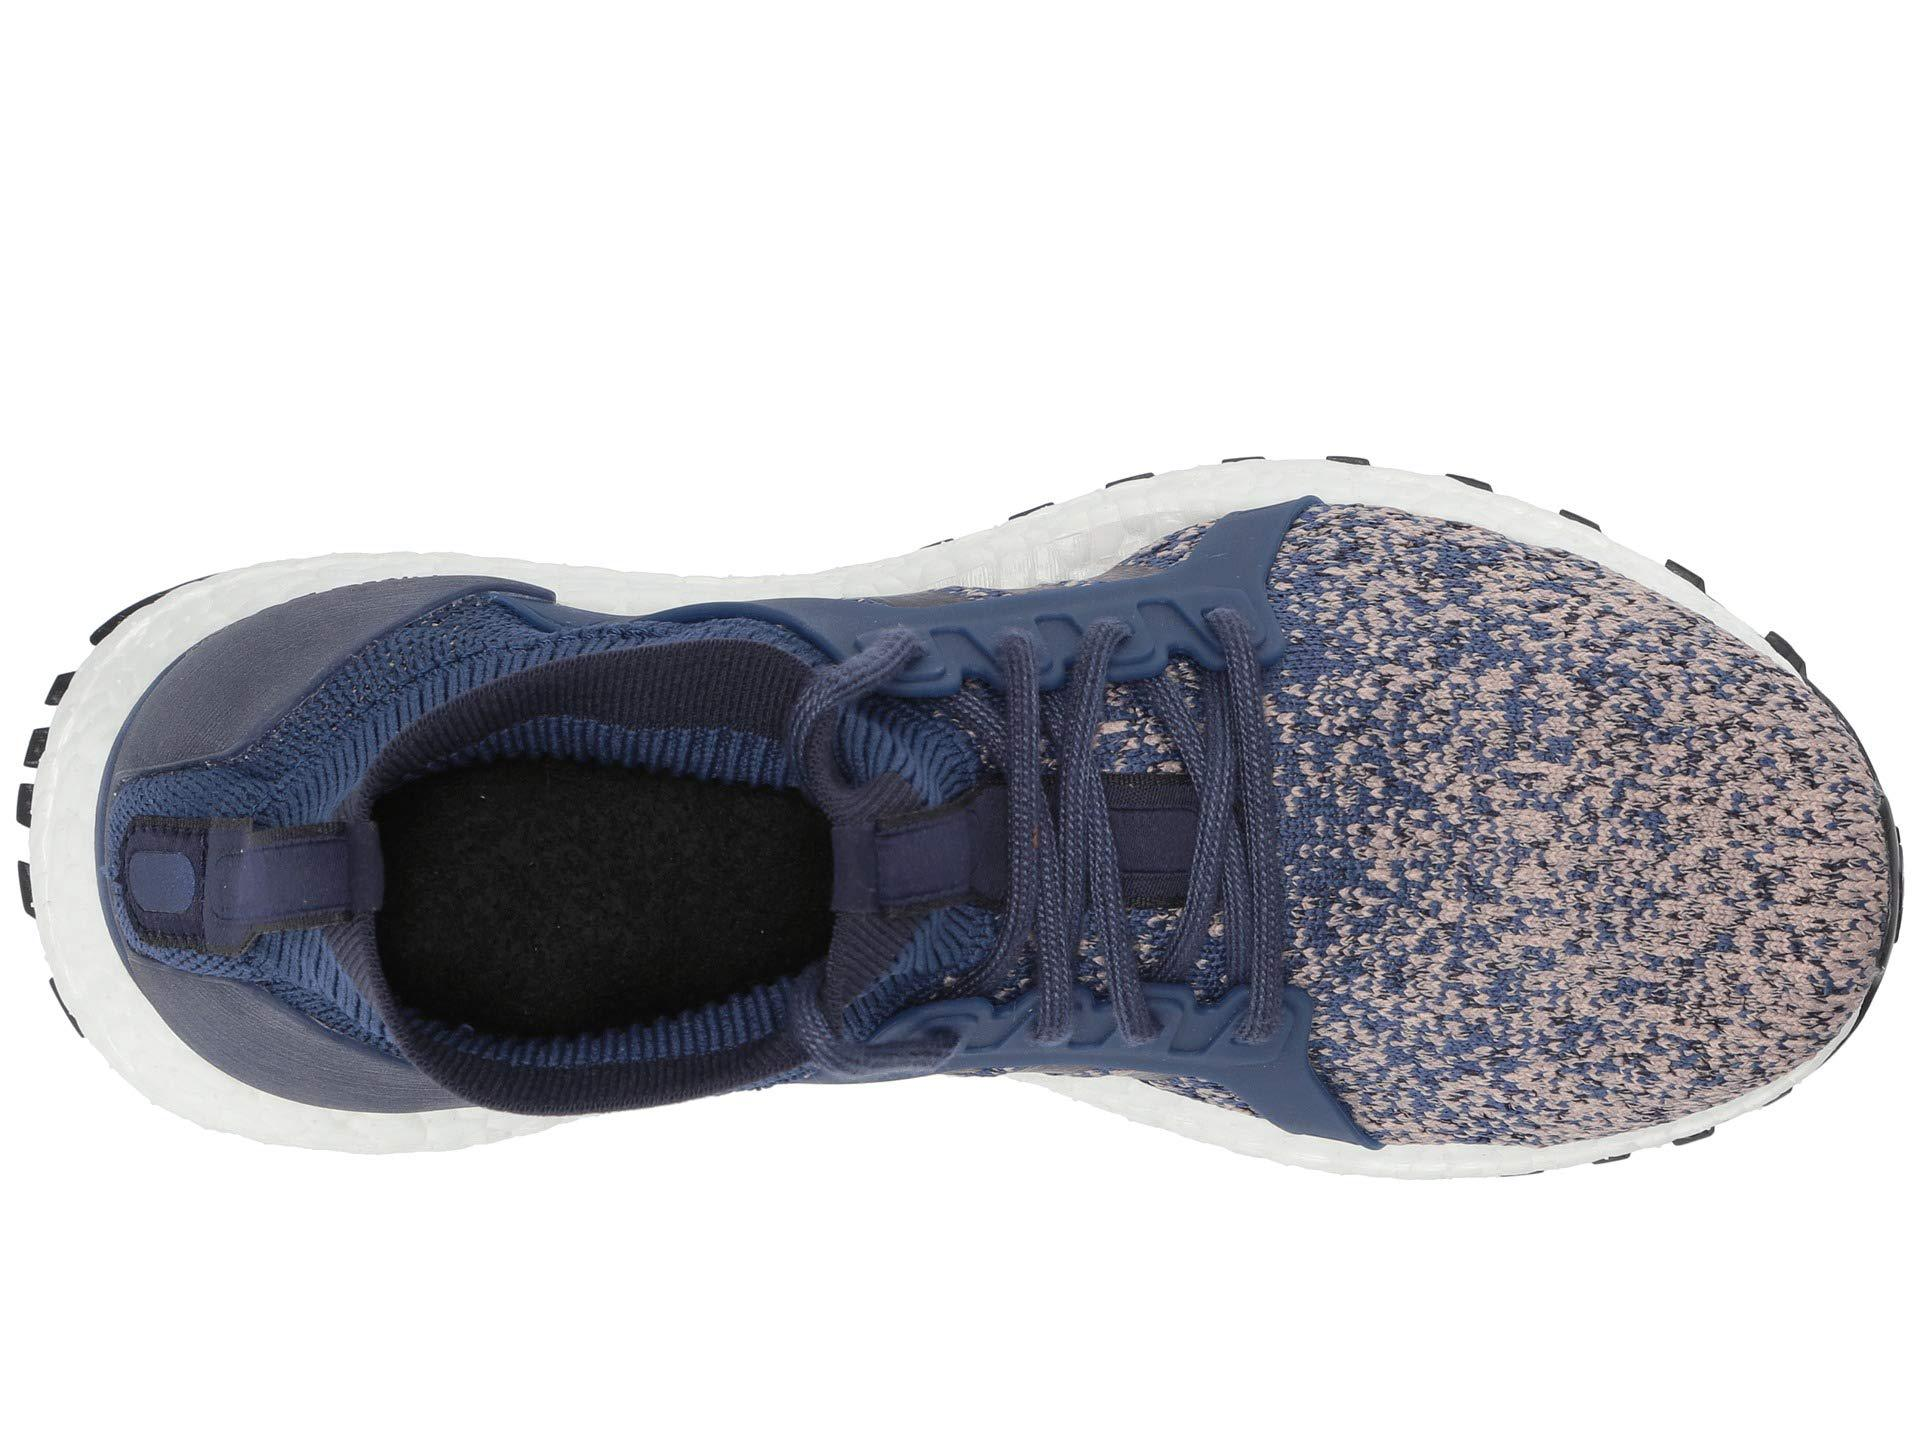 Adidas Blue Ultraboost X All Terrain (nobind,nobind,ashpea) Women's Shoes